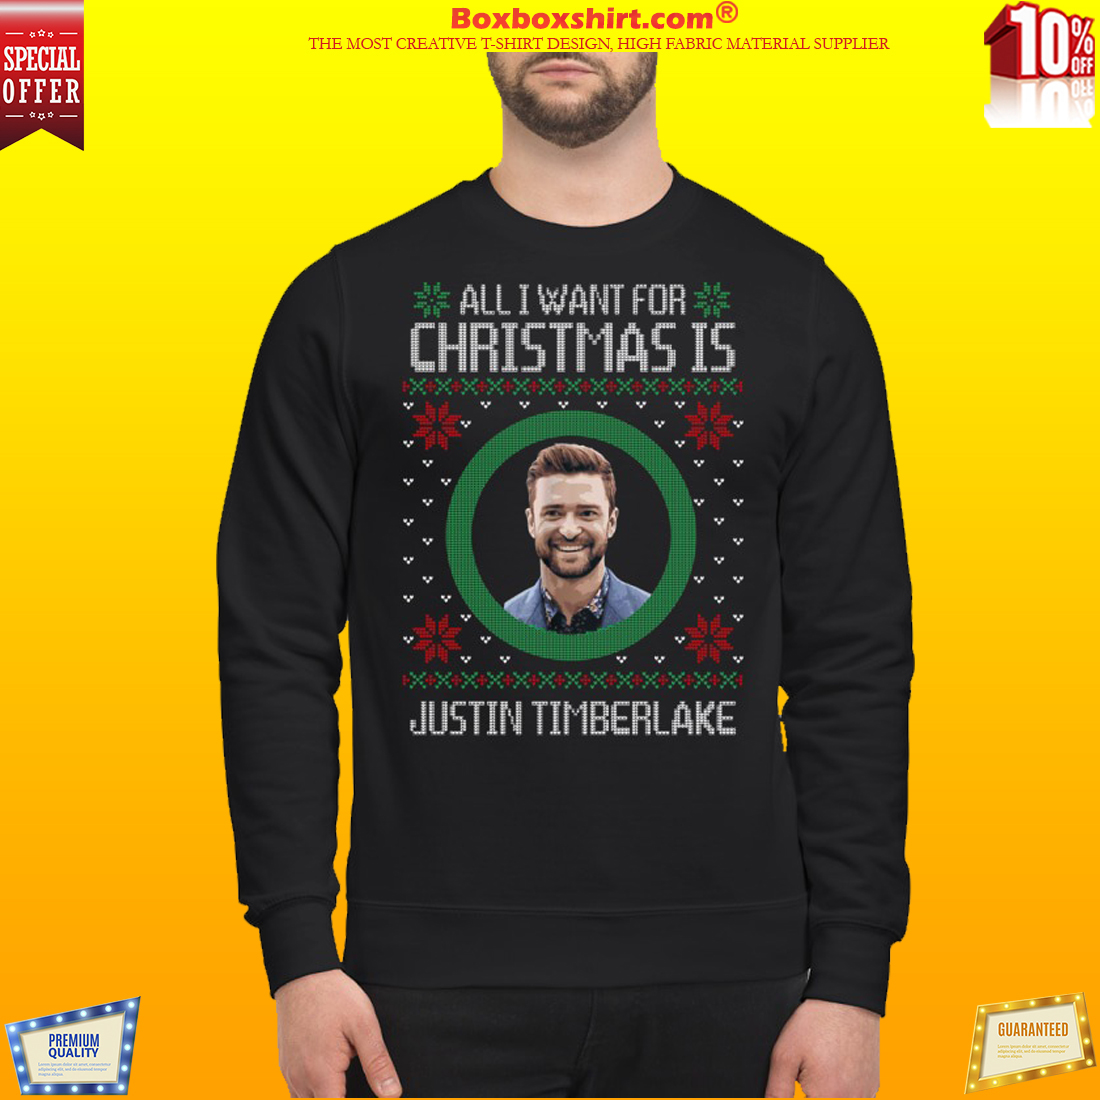 All I want for Christmas is Justin Timberlake sweatshirt